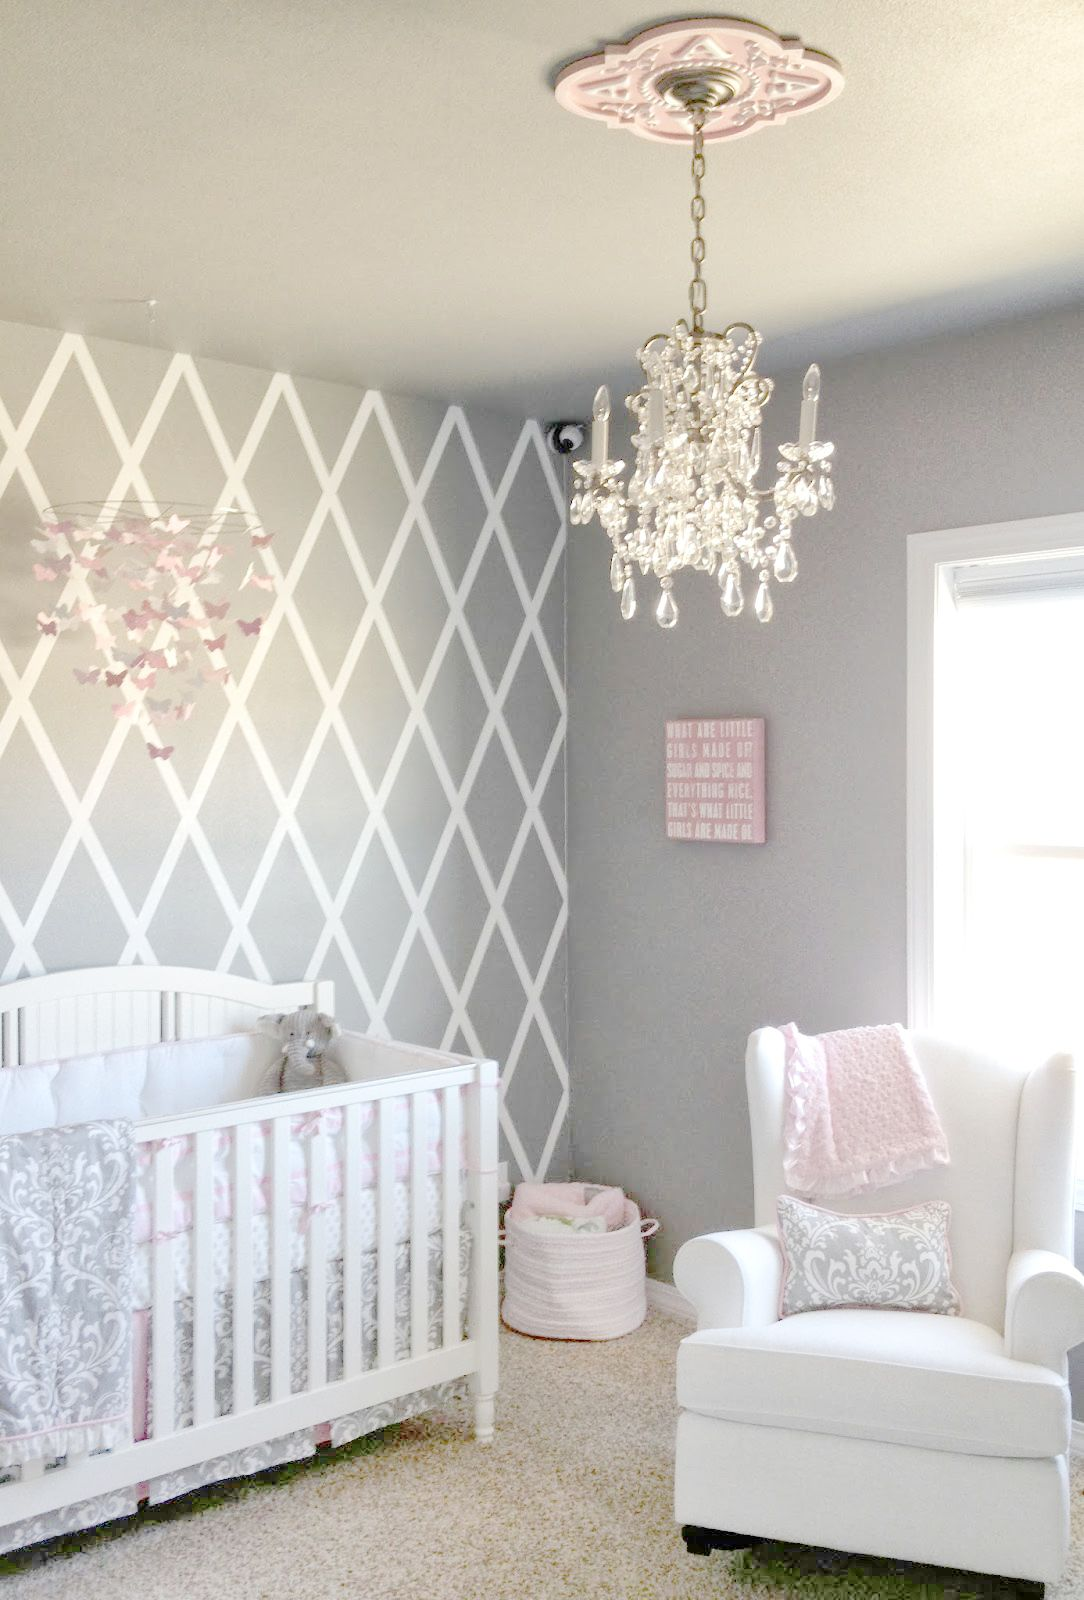 Pink And Gray Baby Bedding Girl Baby Bedding Baby Girl Room Baby Room Decor Girl Room